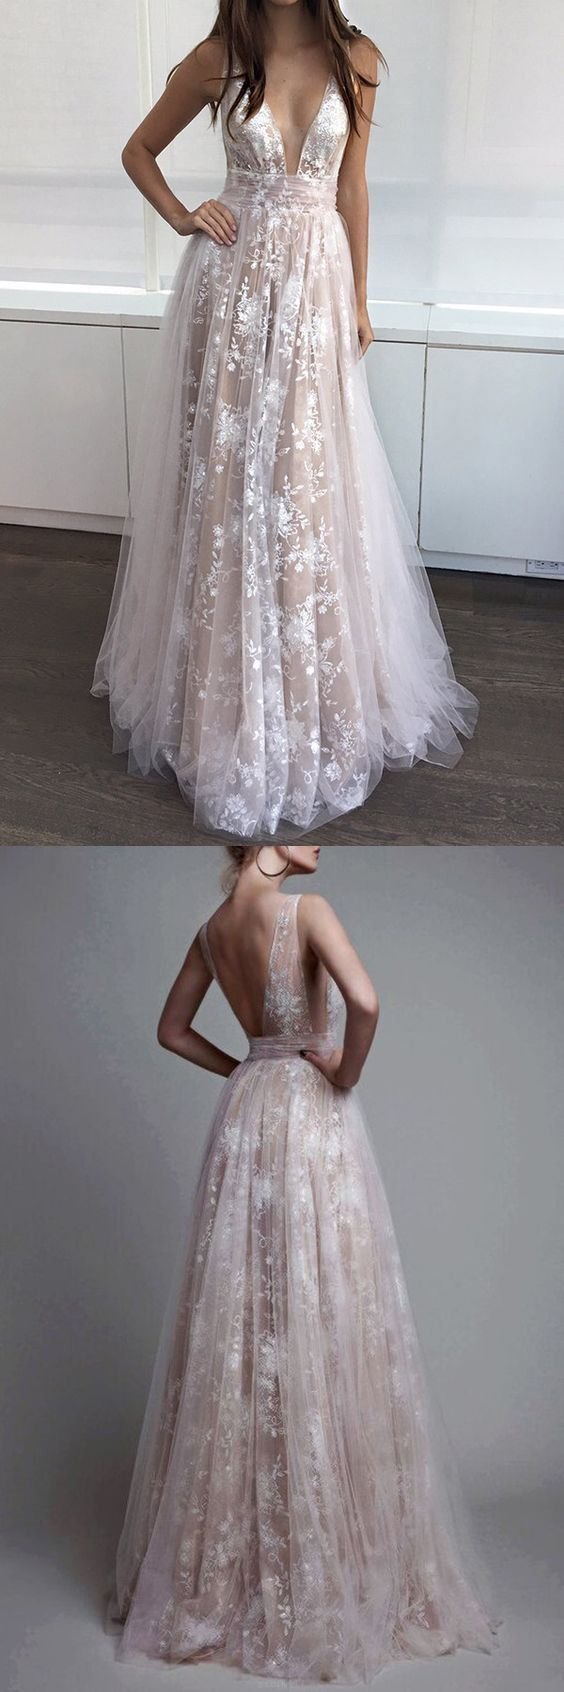 Customized sleeveless dresses long champagne evening prom dresses